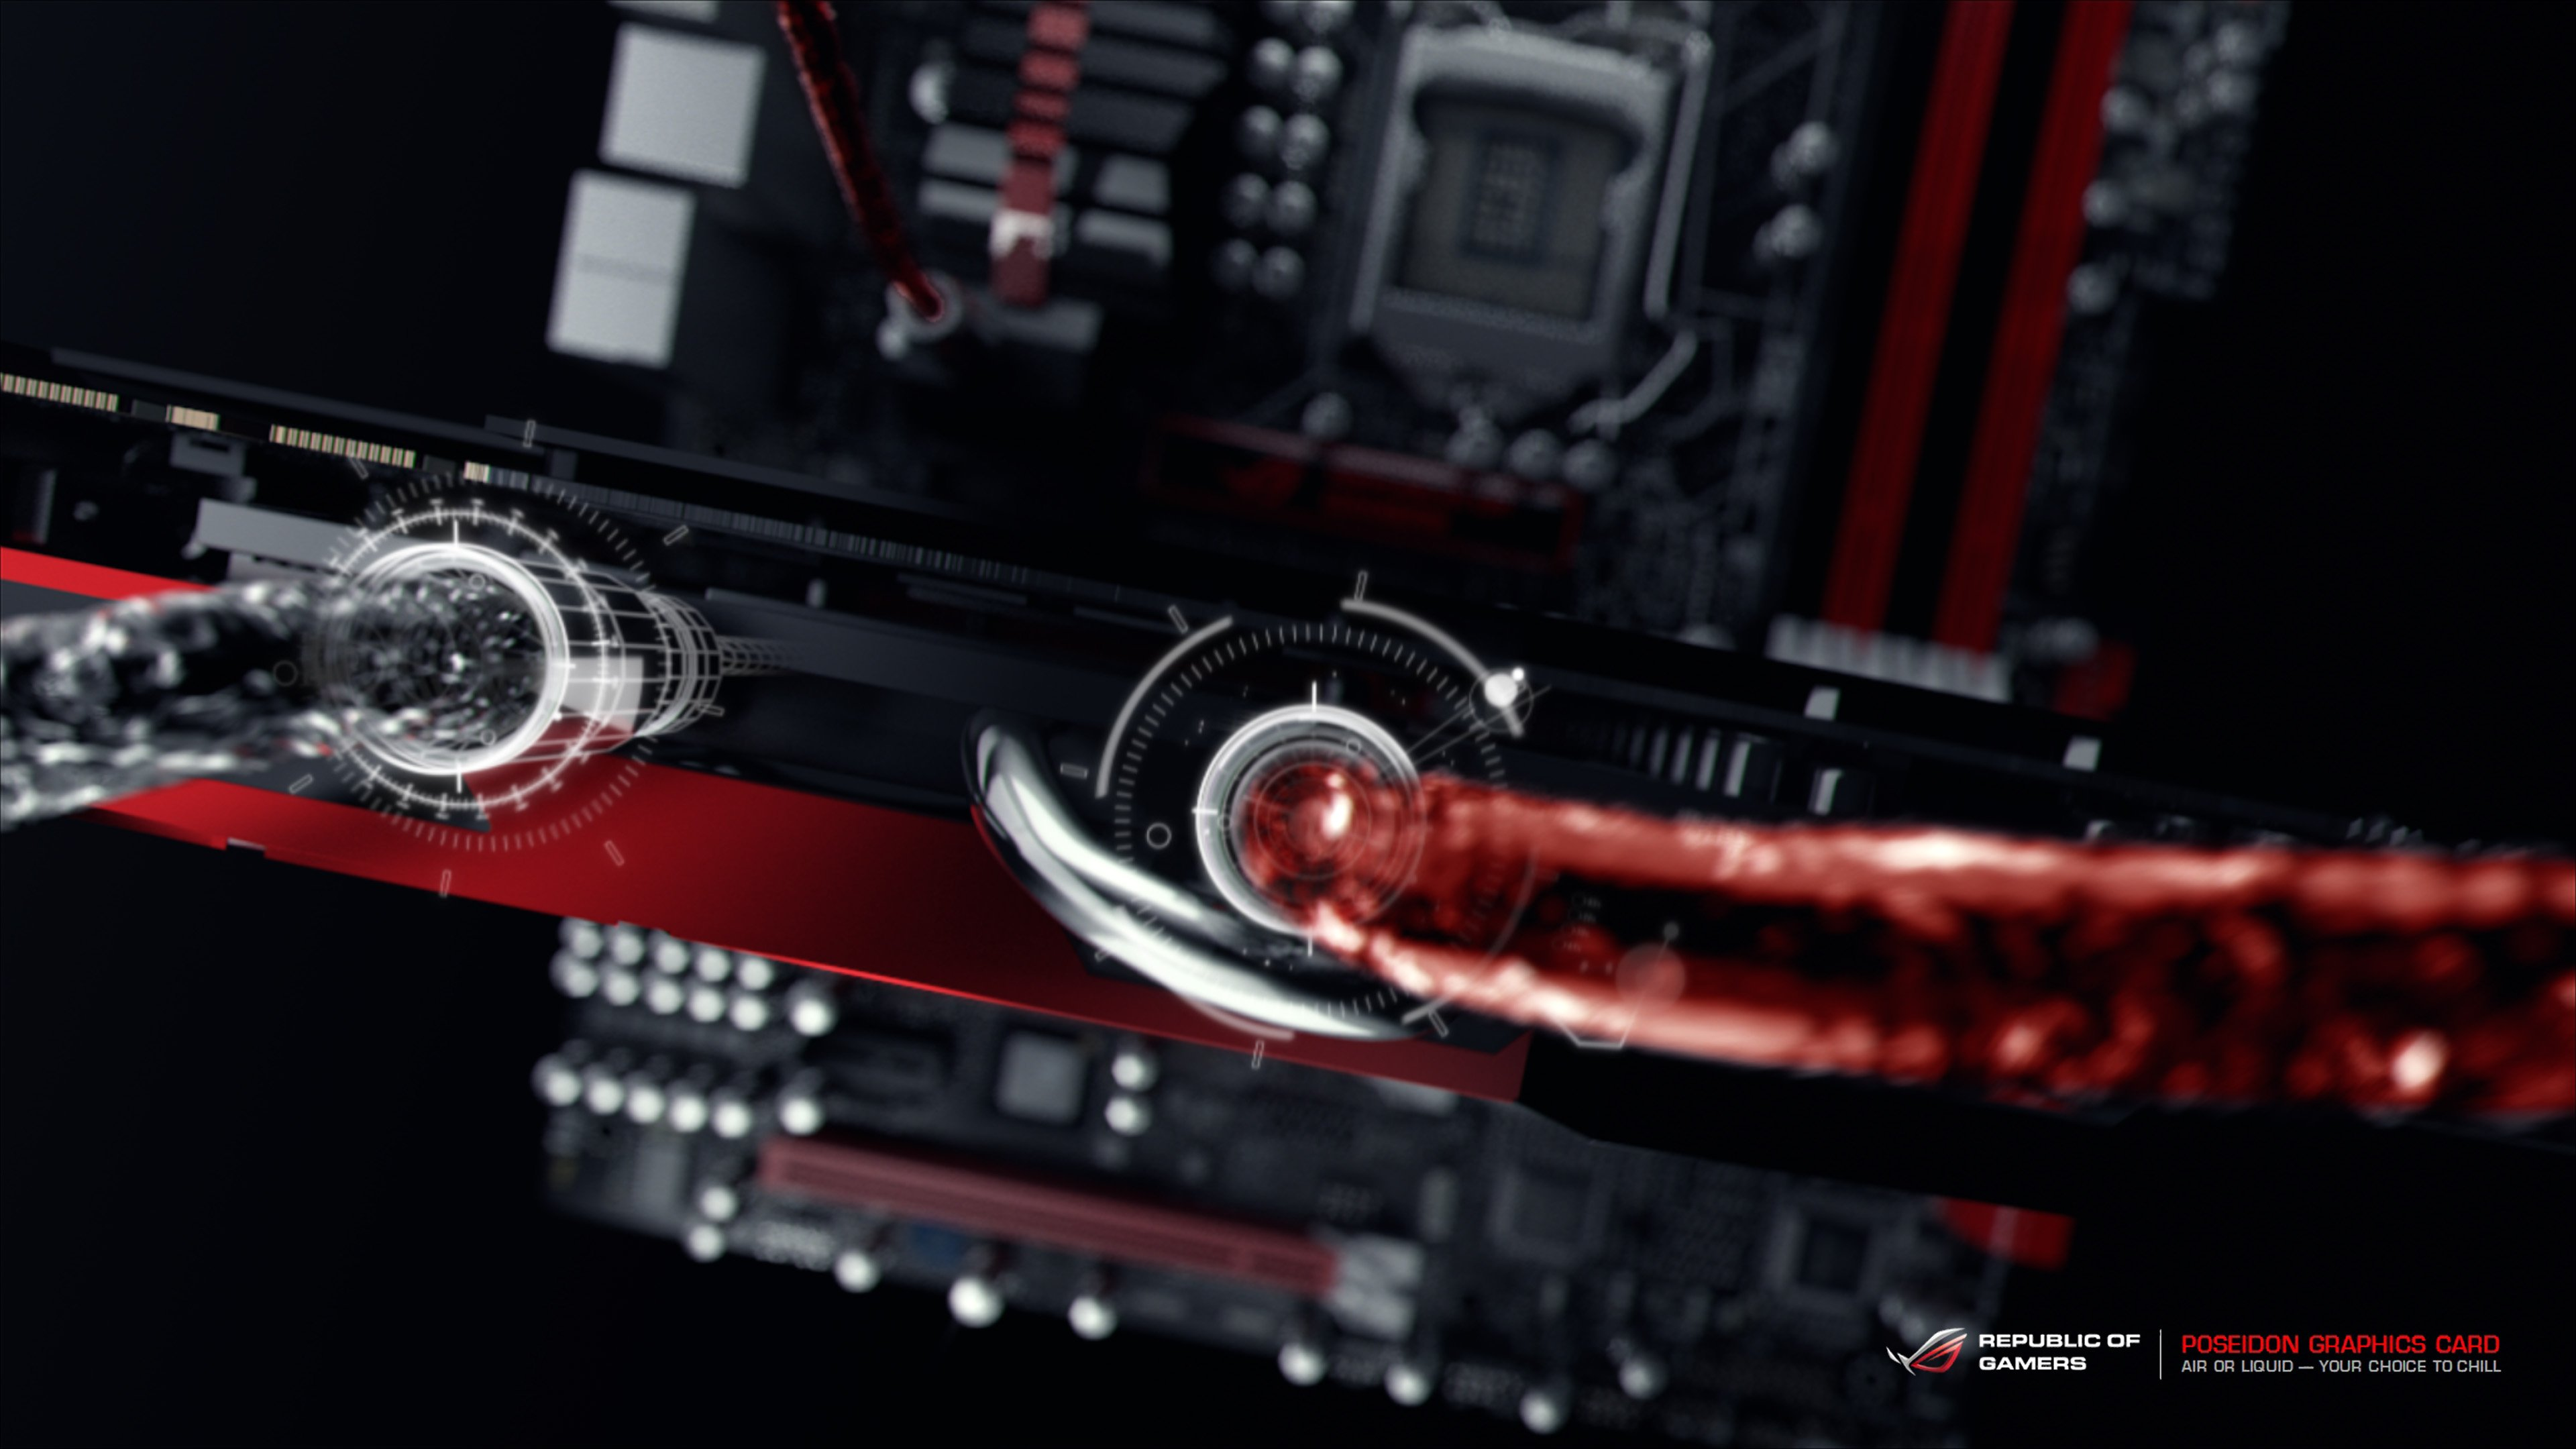 Asus pb287q monitor 2014 4k uhd wallpaper competition page 64 - Poseidon Ultra Hd Wallpapers For You To Download For Your Pc Desktop